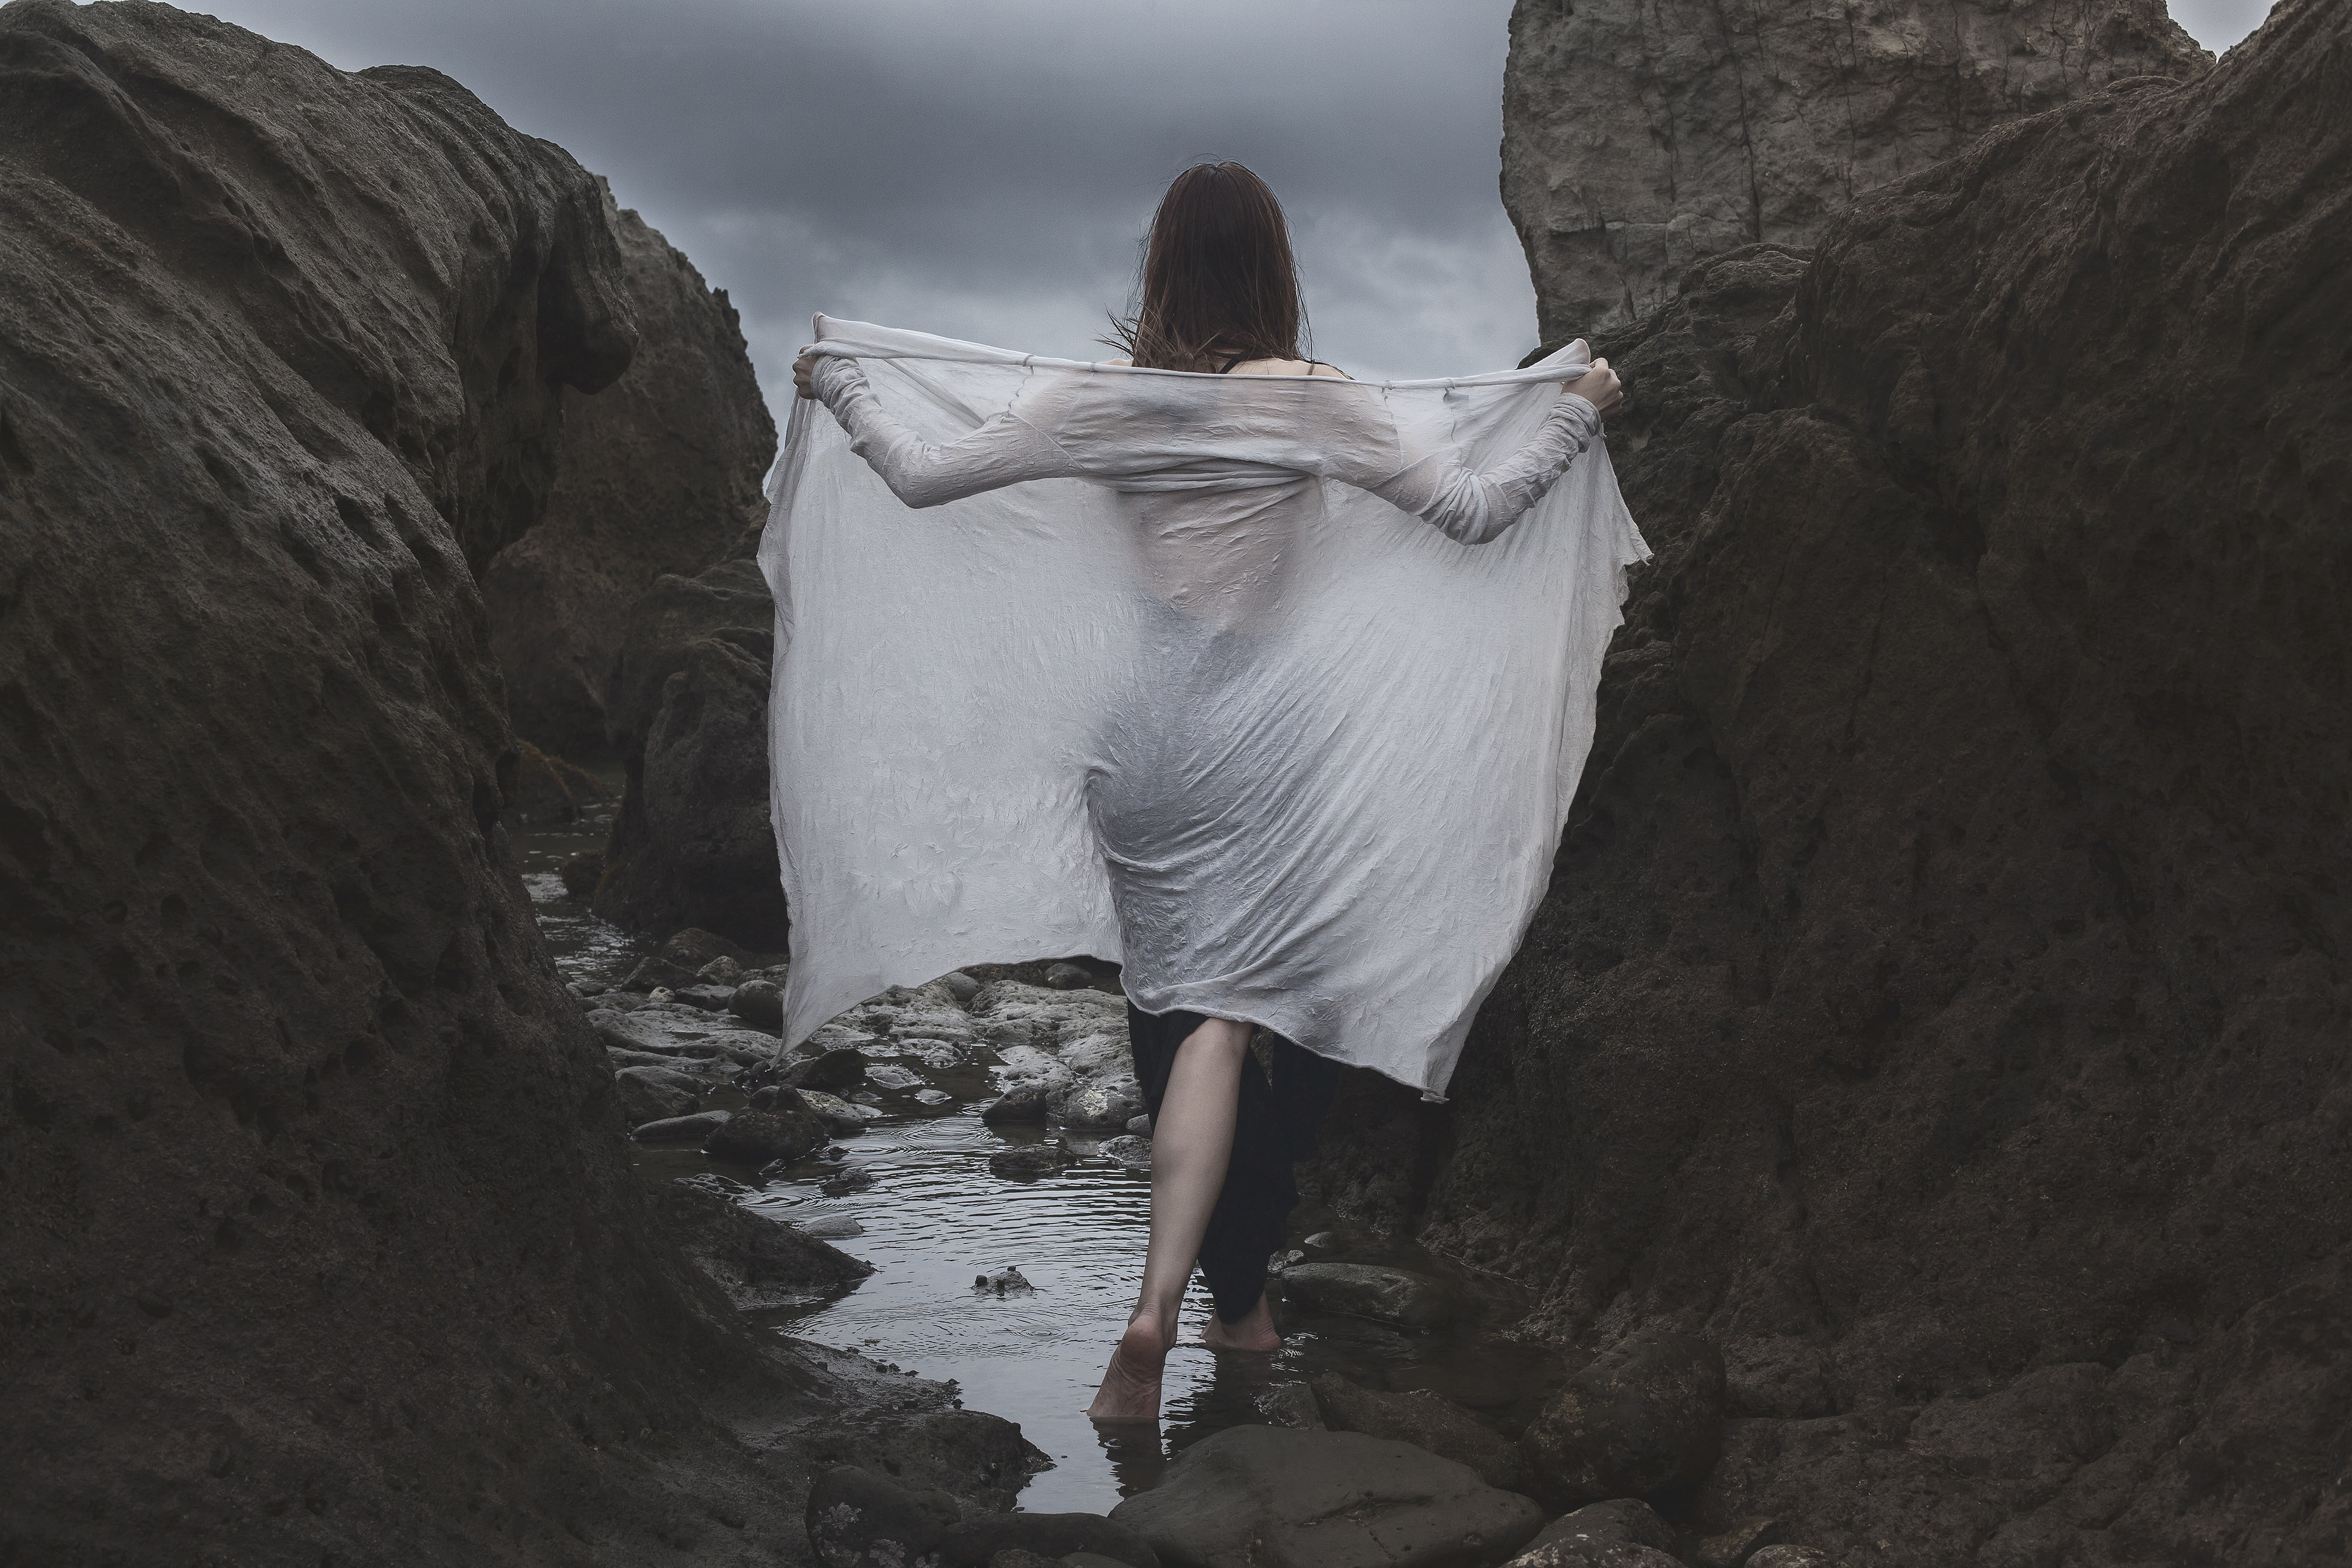 woman standing and covering white towel between rock formation